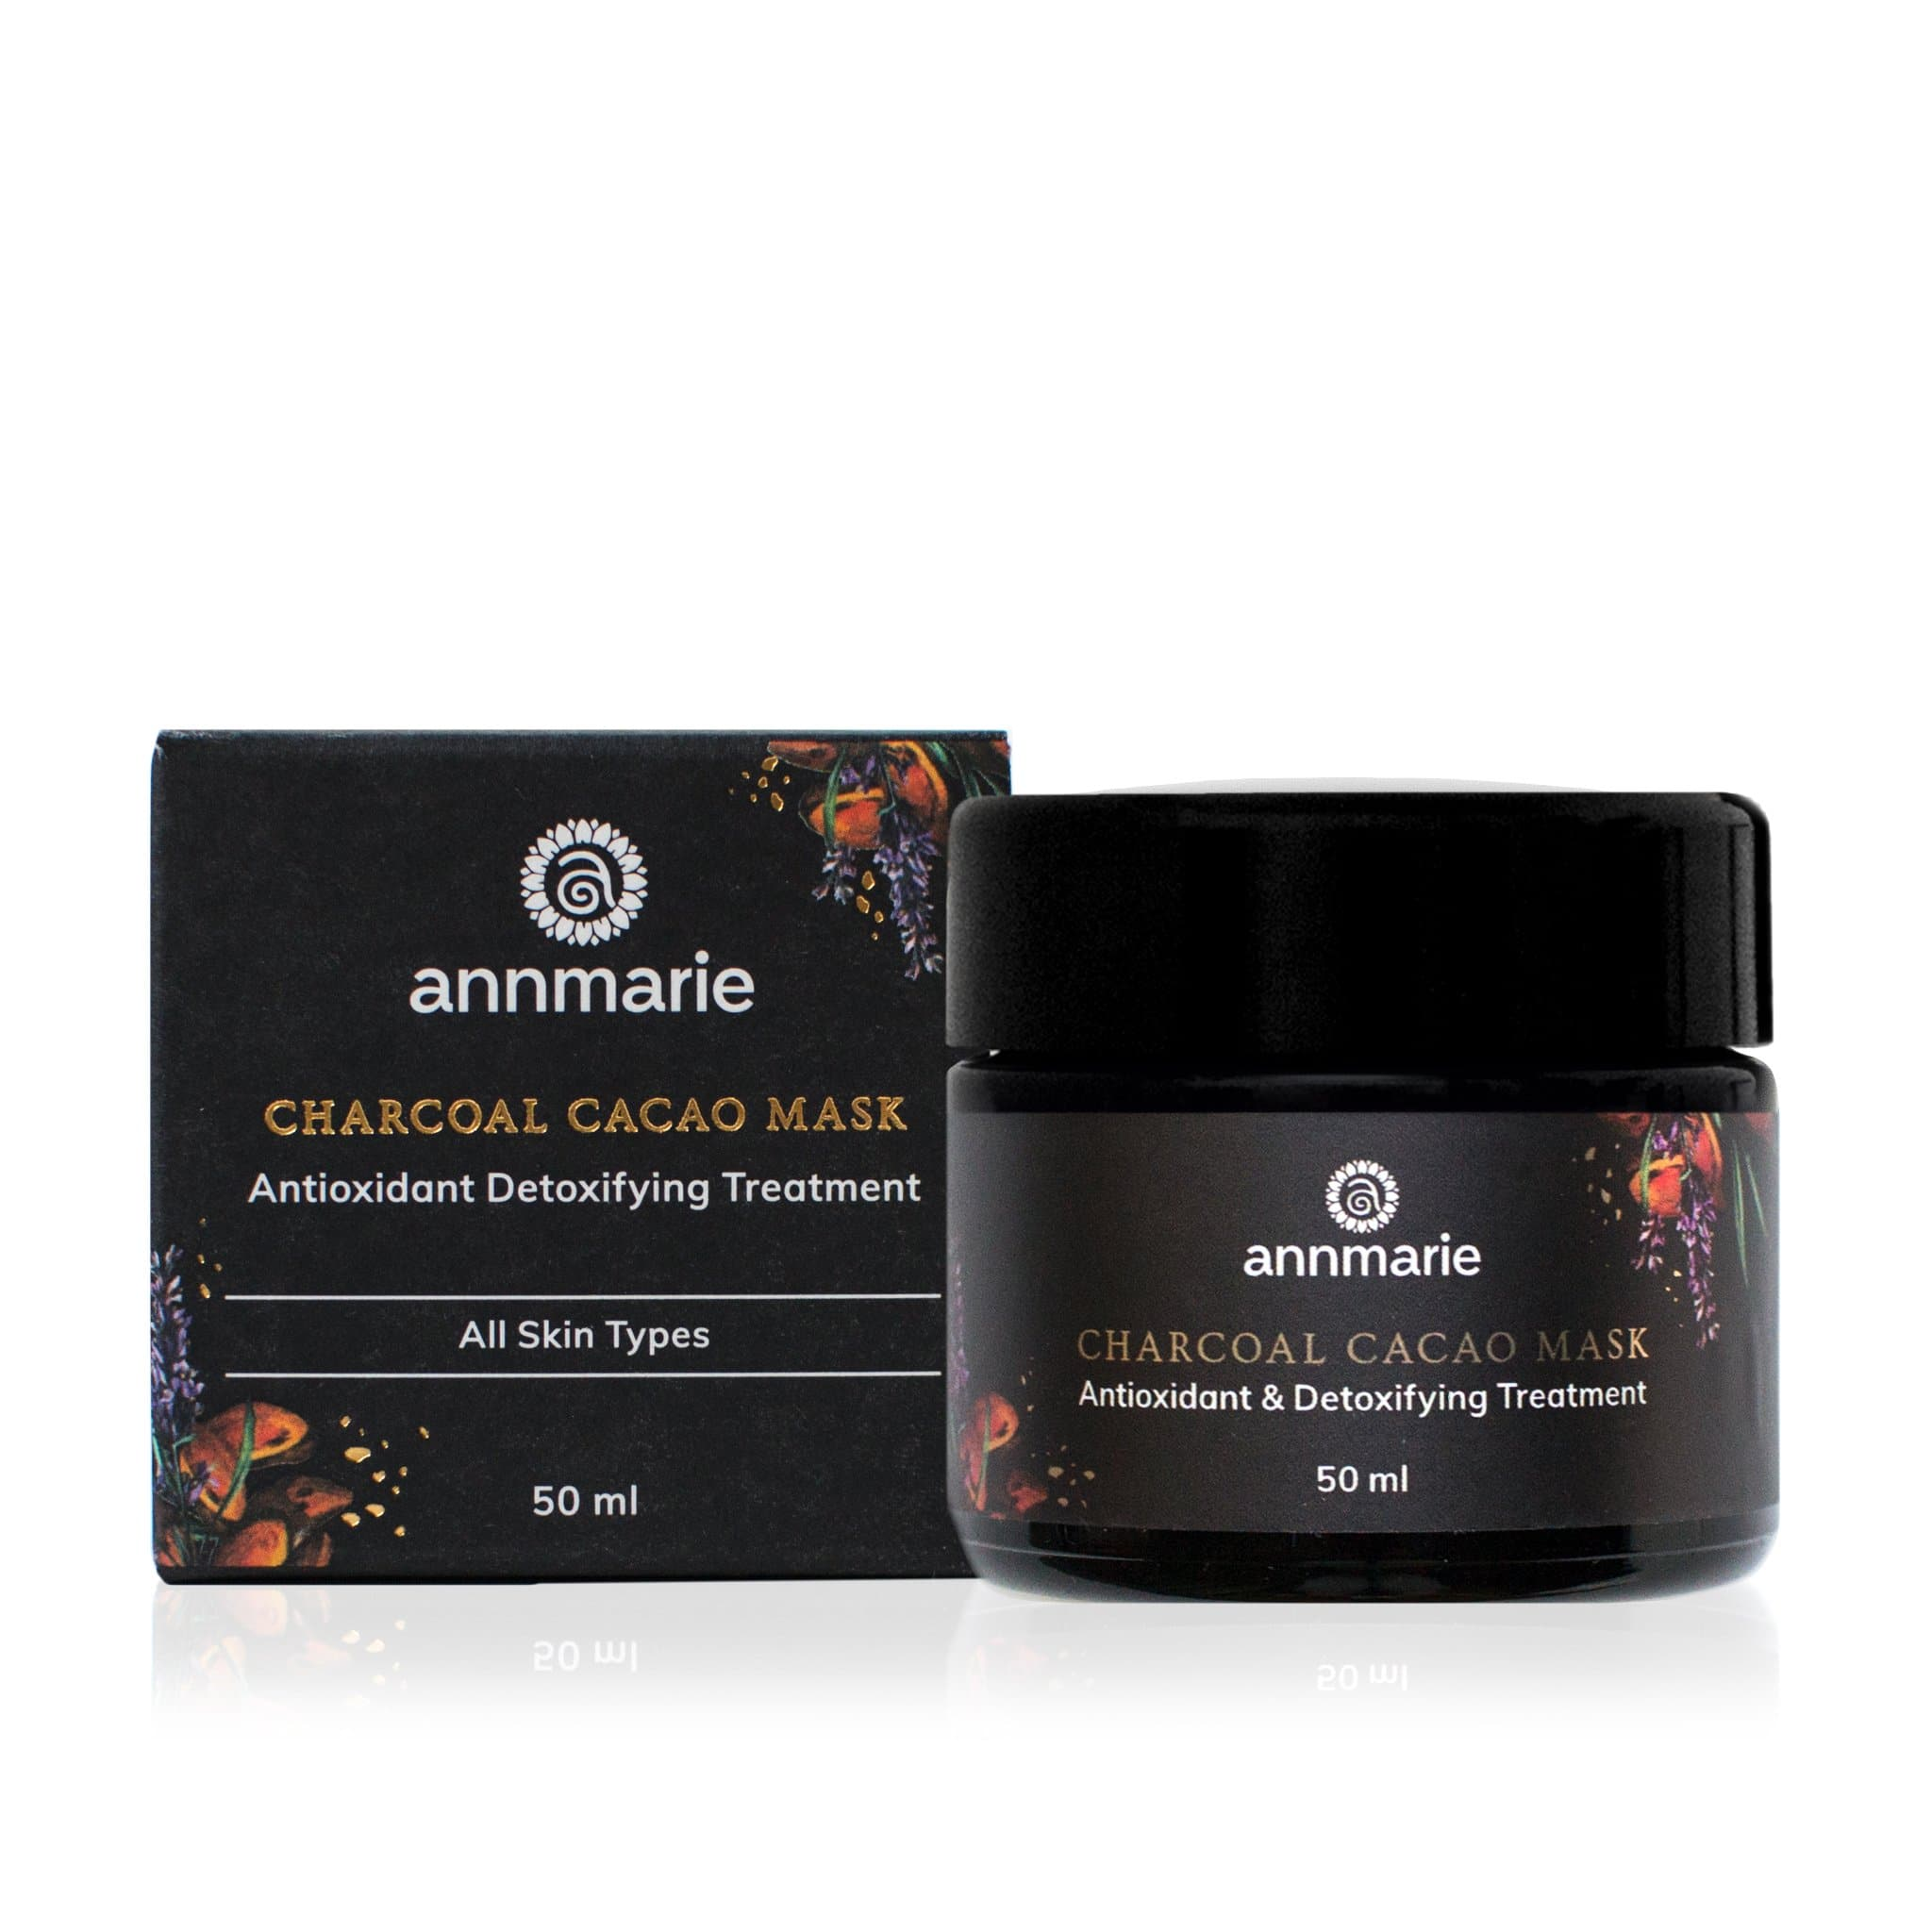 Annmarie Gianni Charcoal Cacao Mask Antioxidant Detoxifying Treatment All skin types 50ml